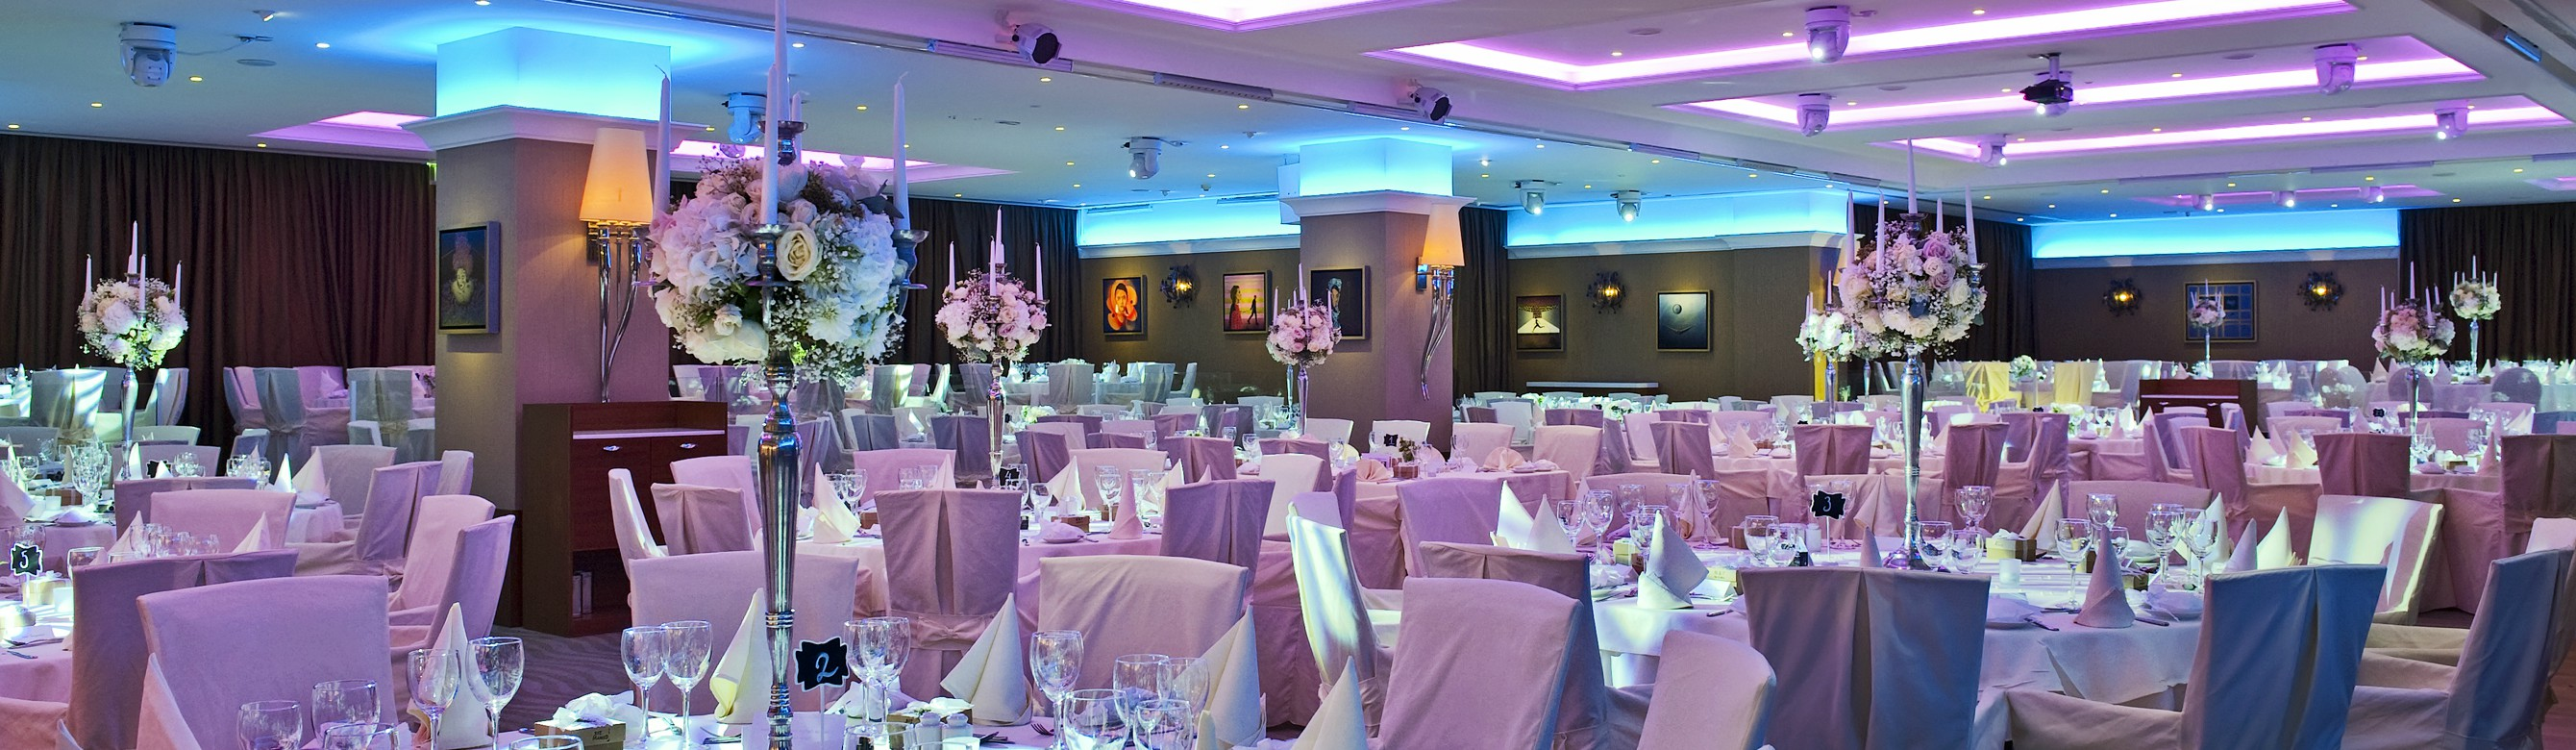 book your wedding day in mediterranean beach hotel limassol